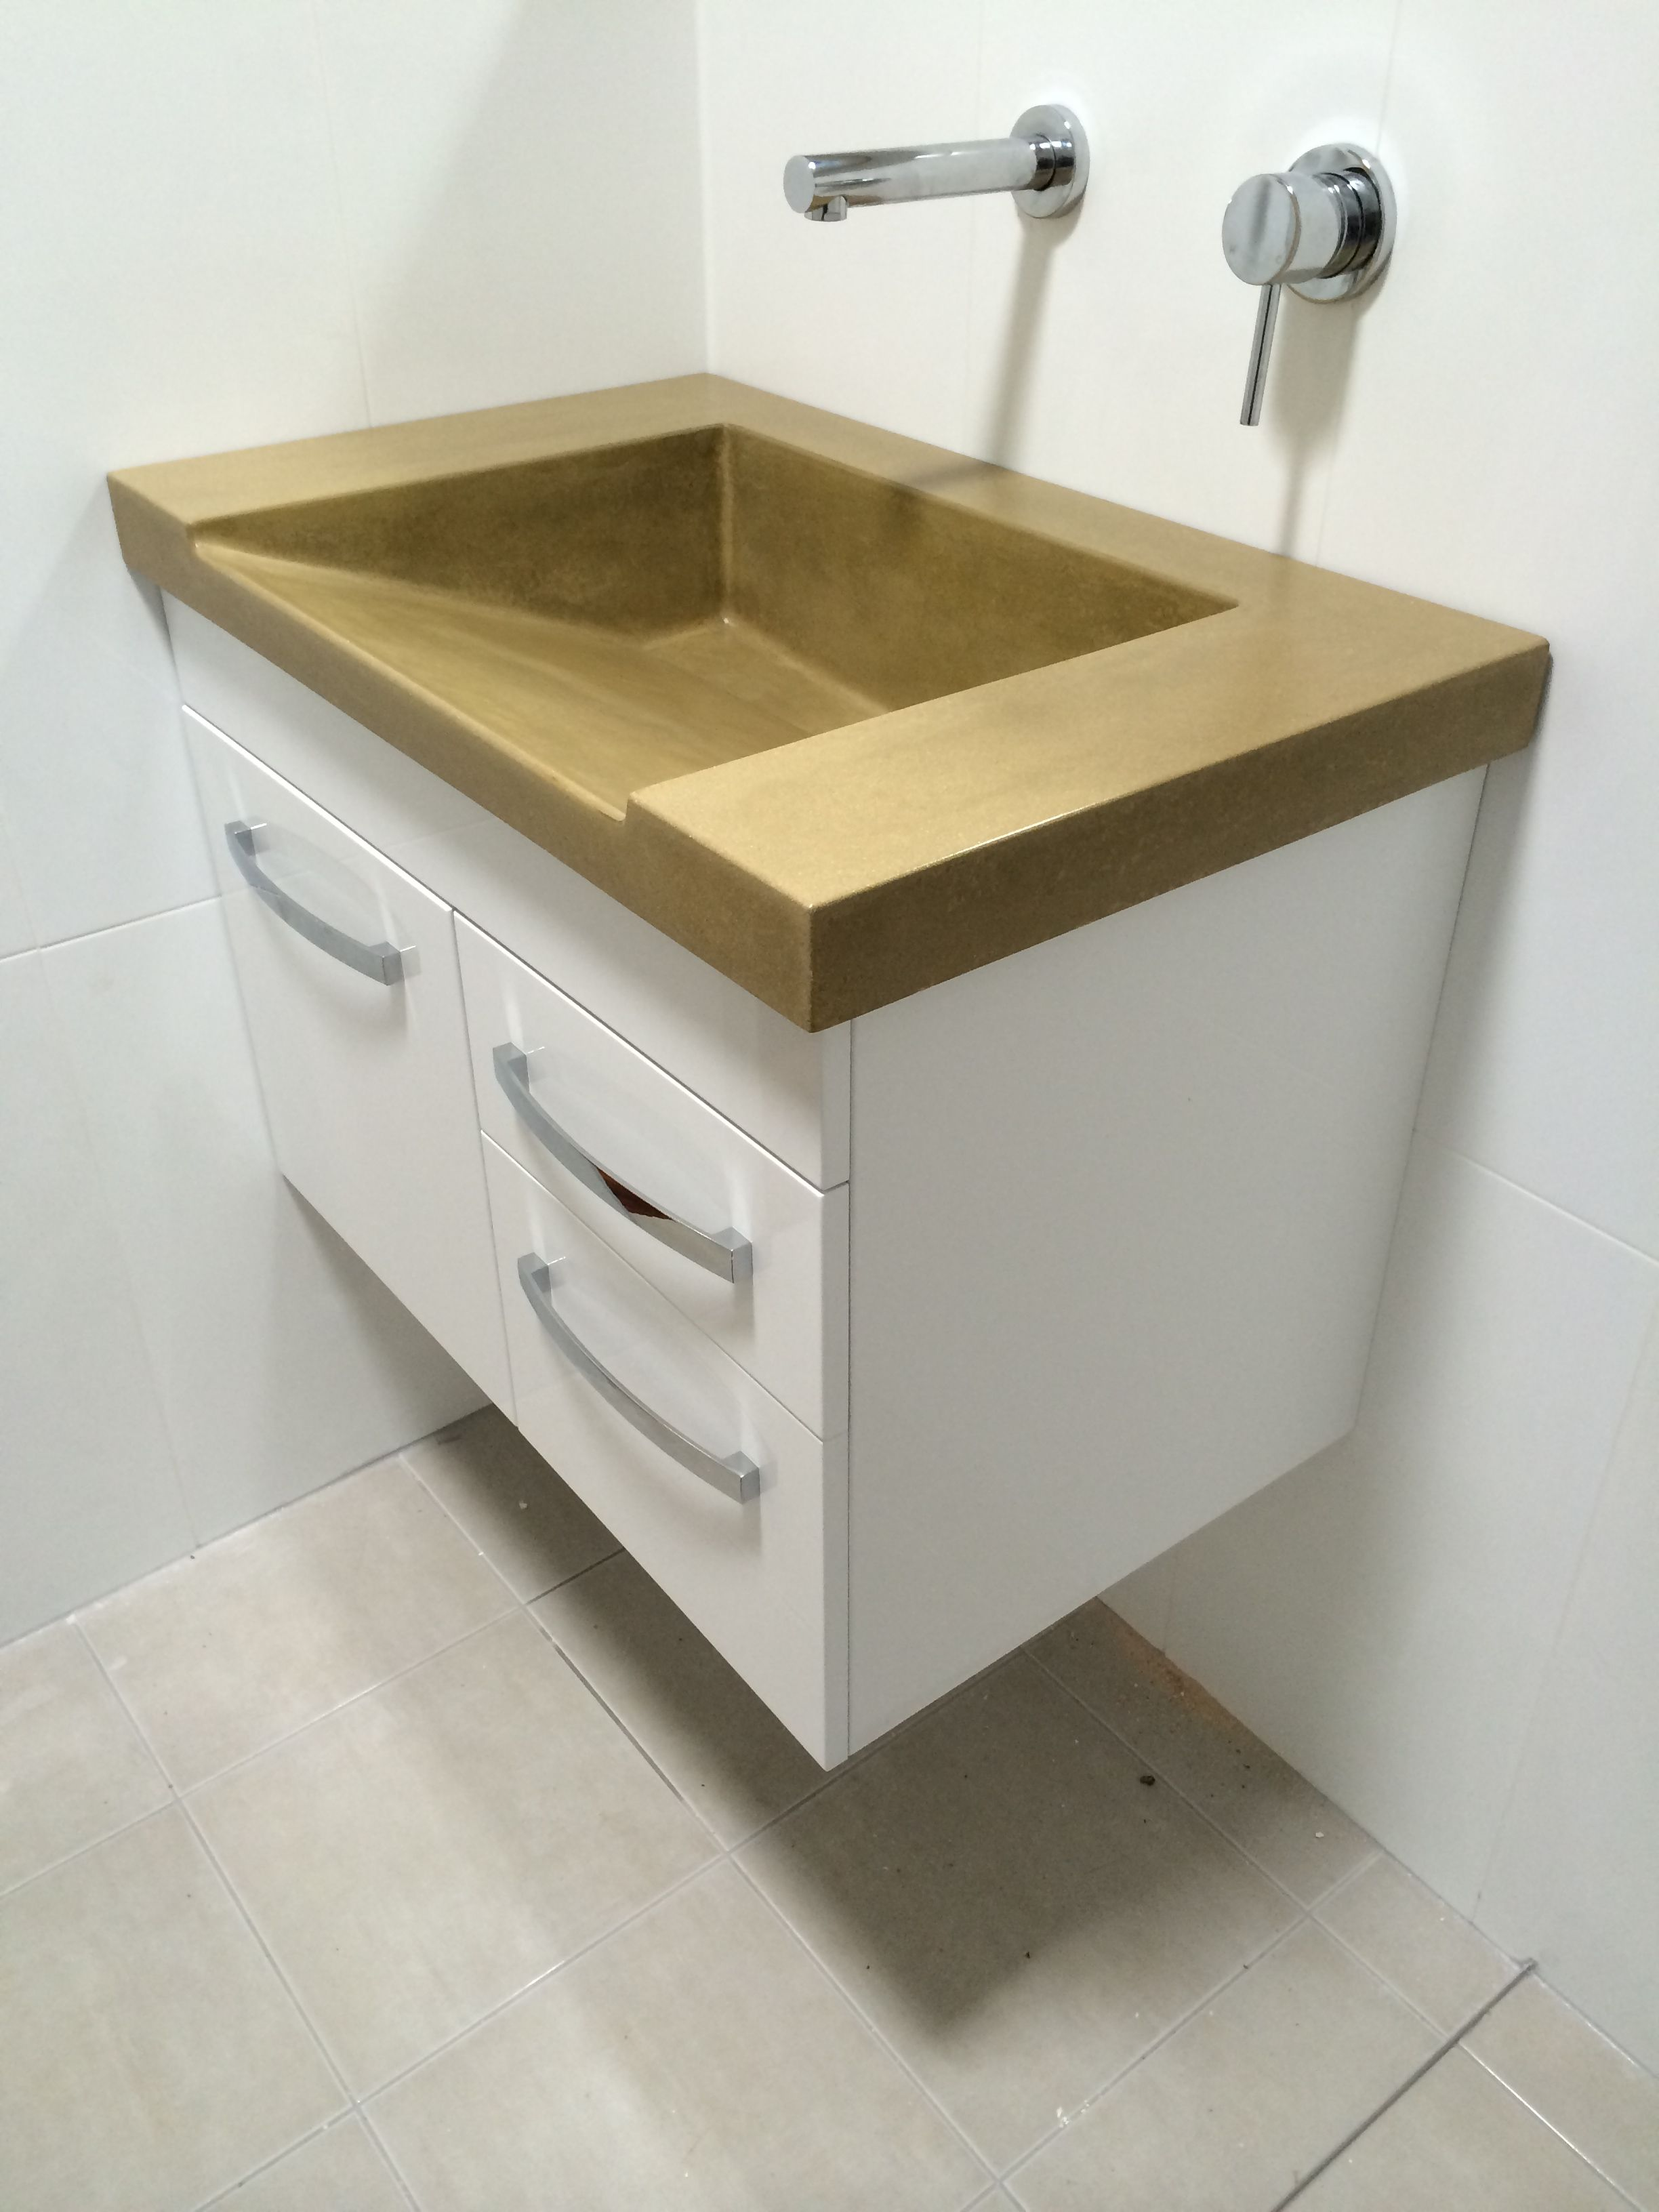 Image On Custom Polished Concrete Vanity top with ramp sink A big statement for an all